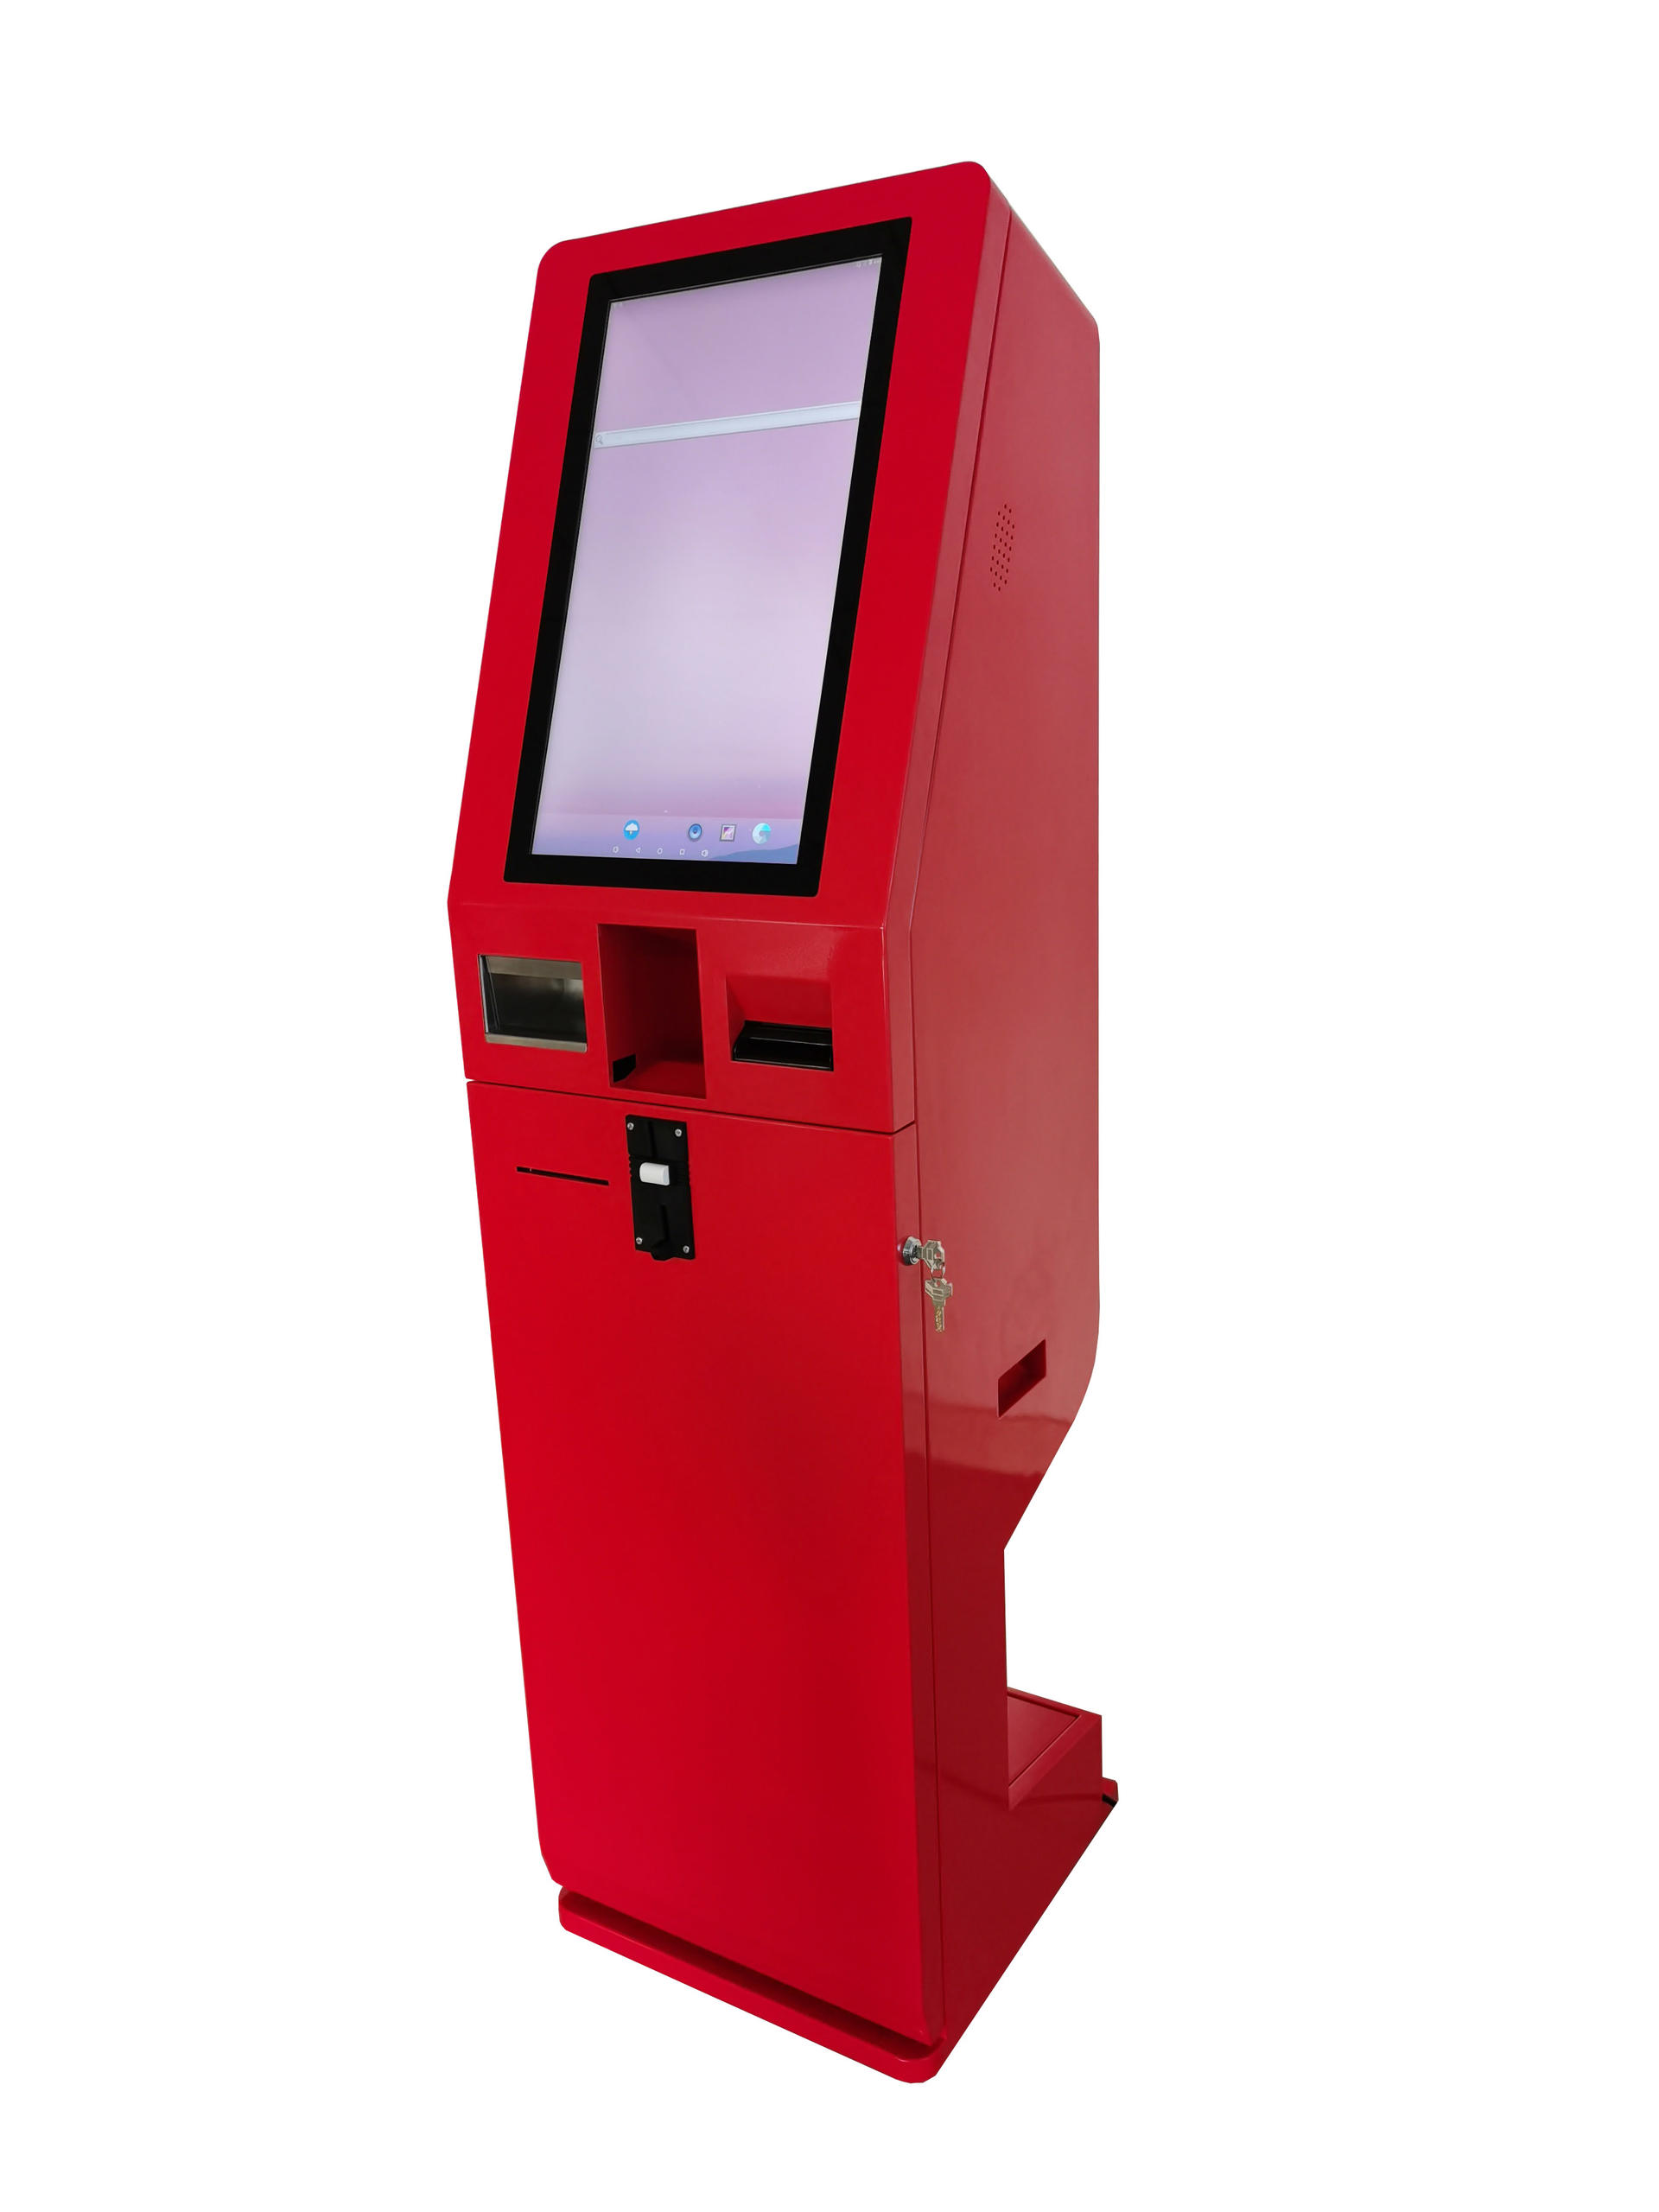 21.5 Inch Self-service Ordering Payment Kiosk With Coin Acceptor and Dispenser